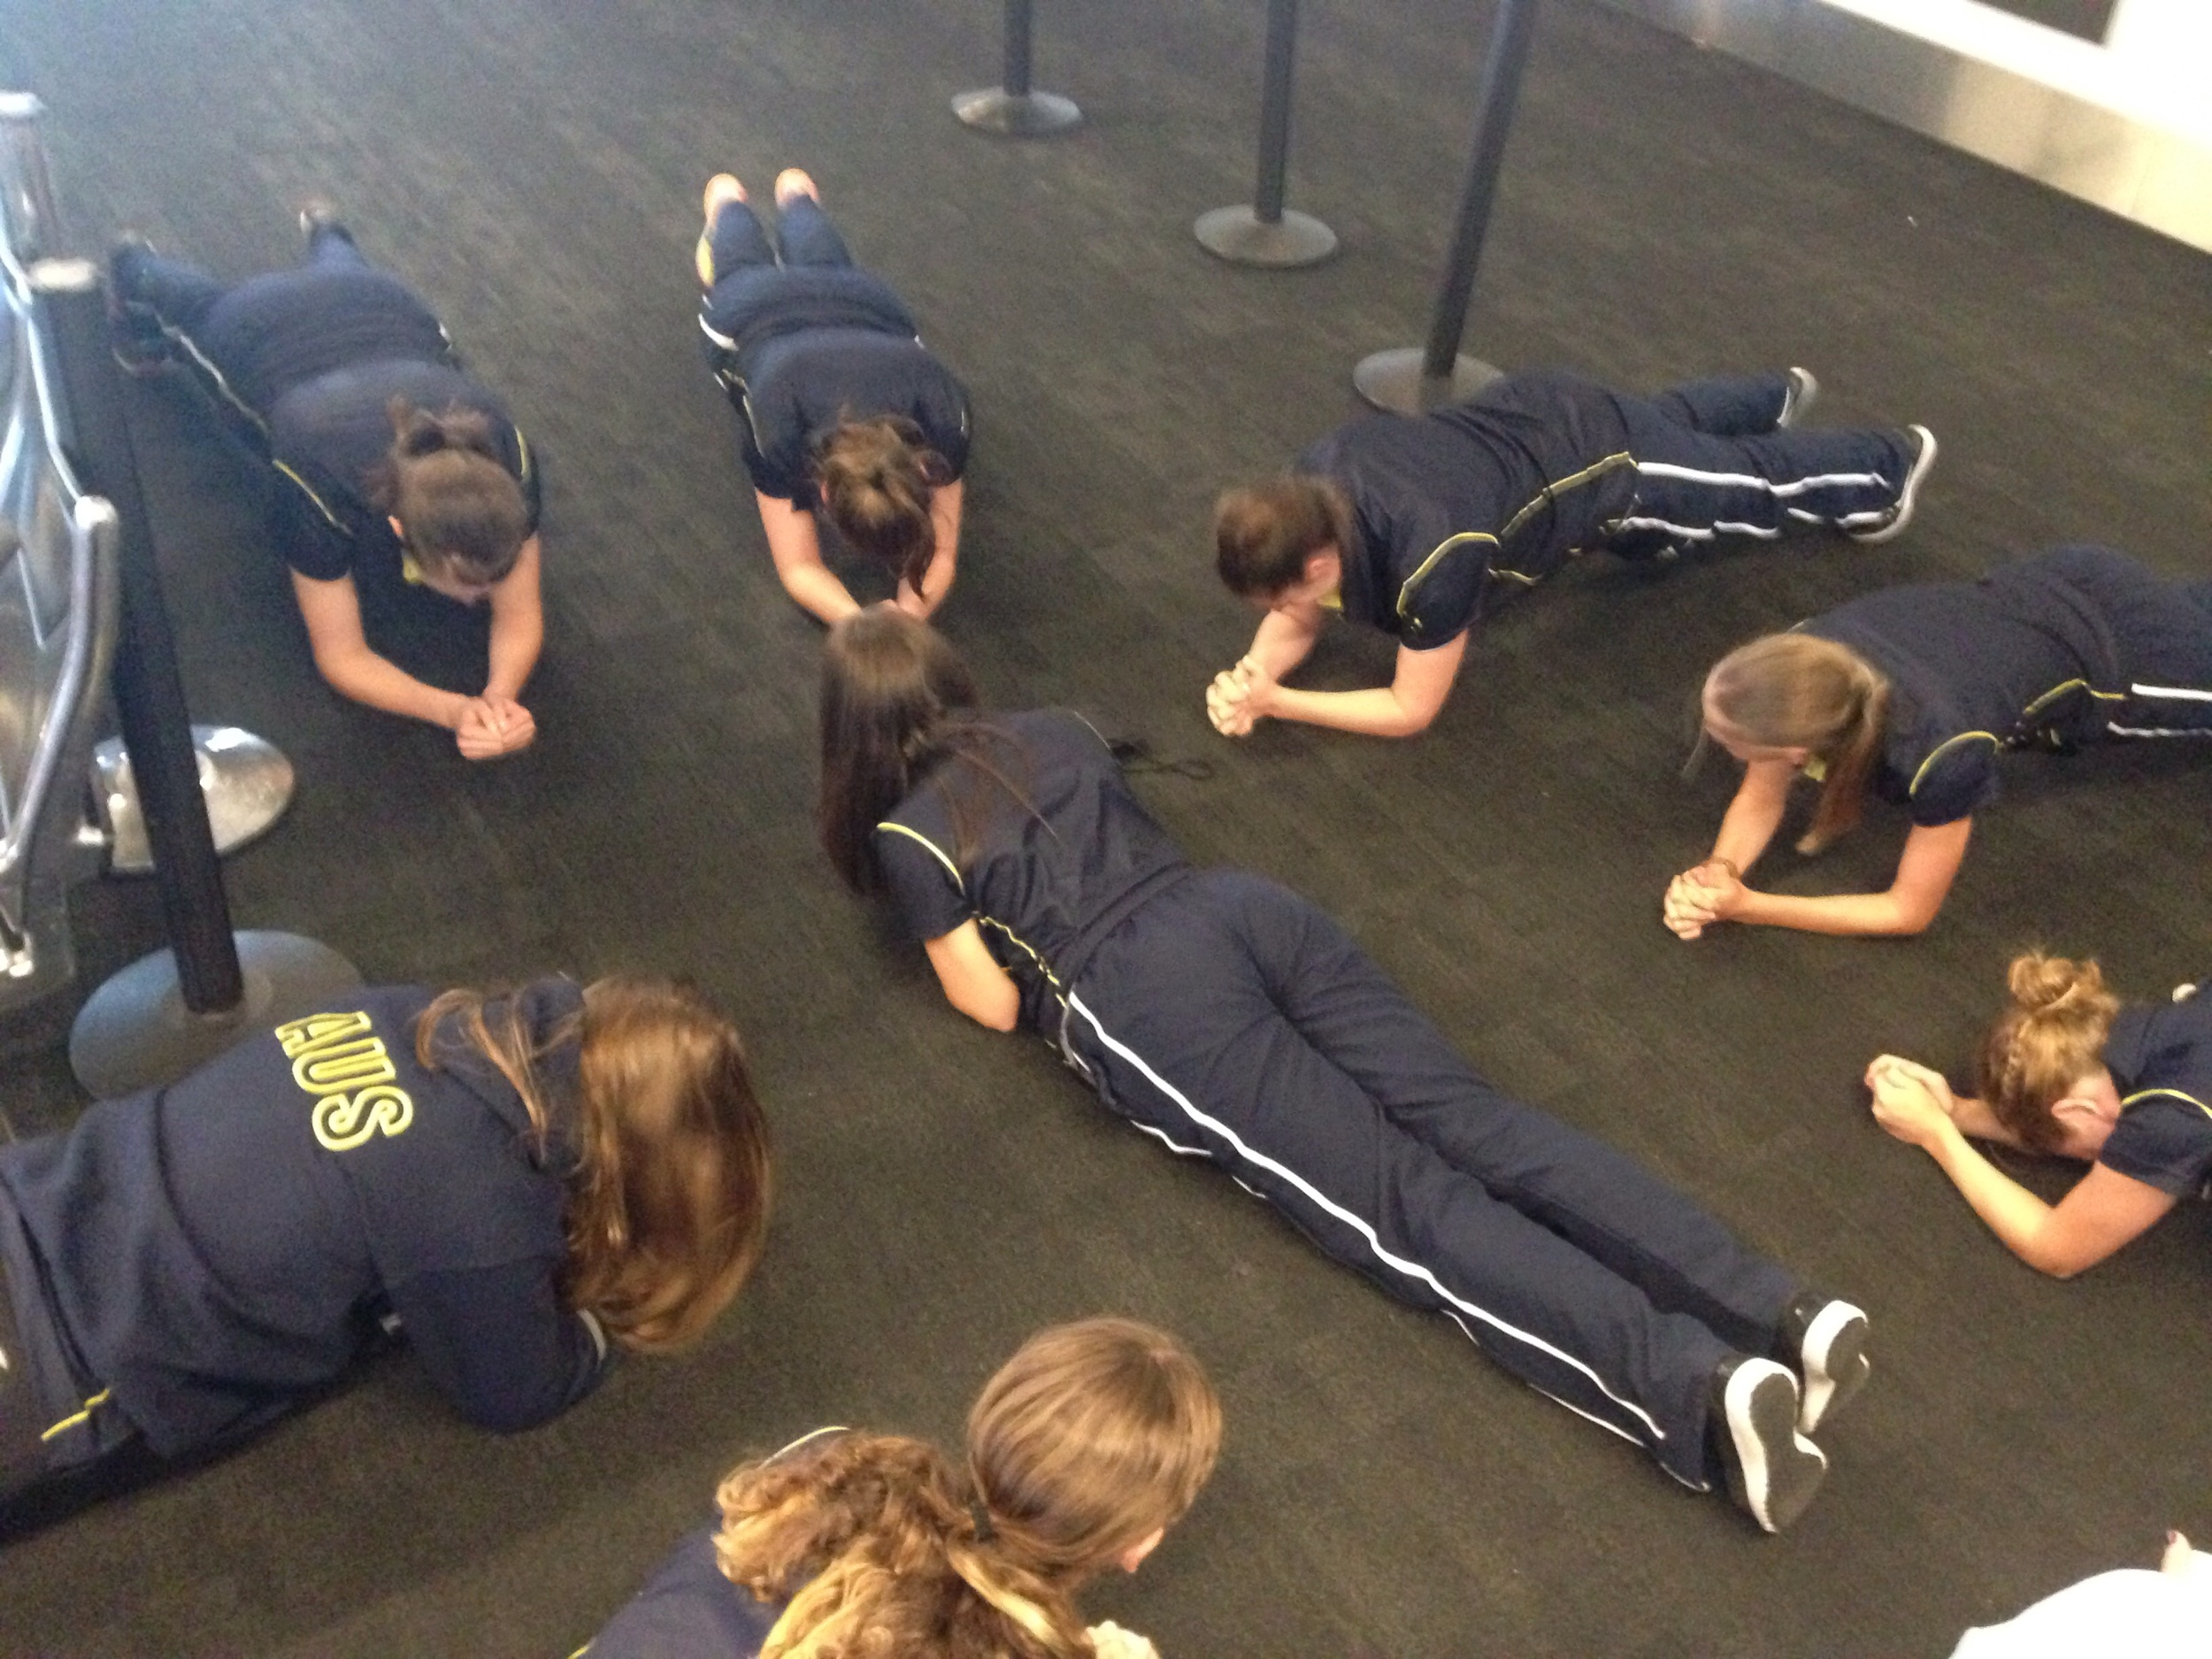 Is there a better way to spend time in an airport than a planking competition?